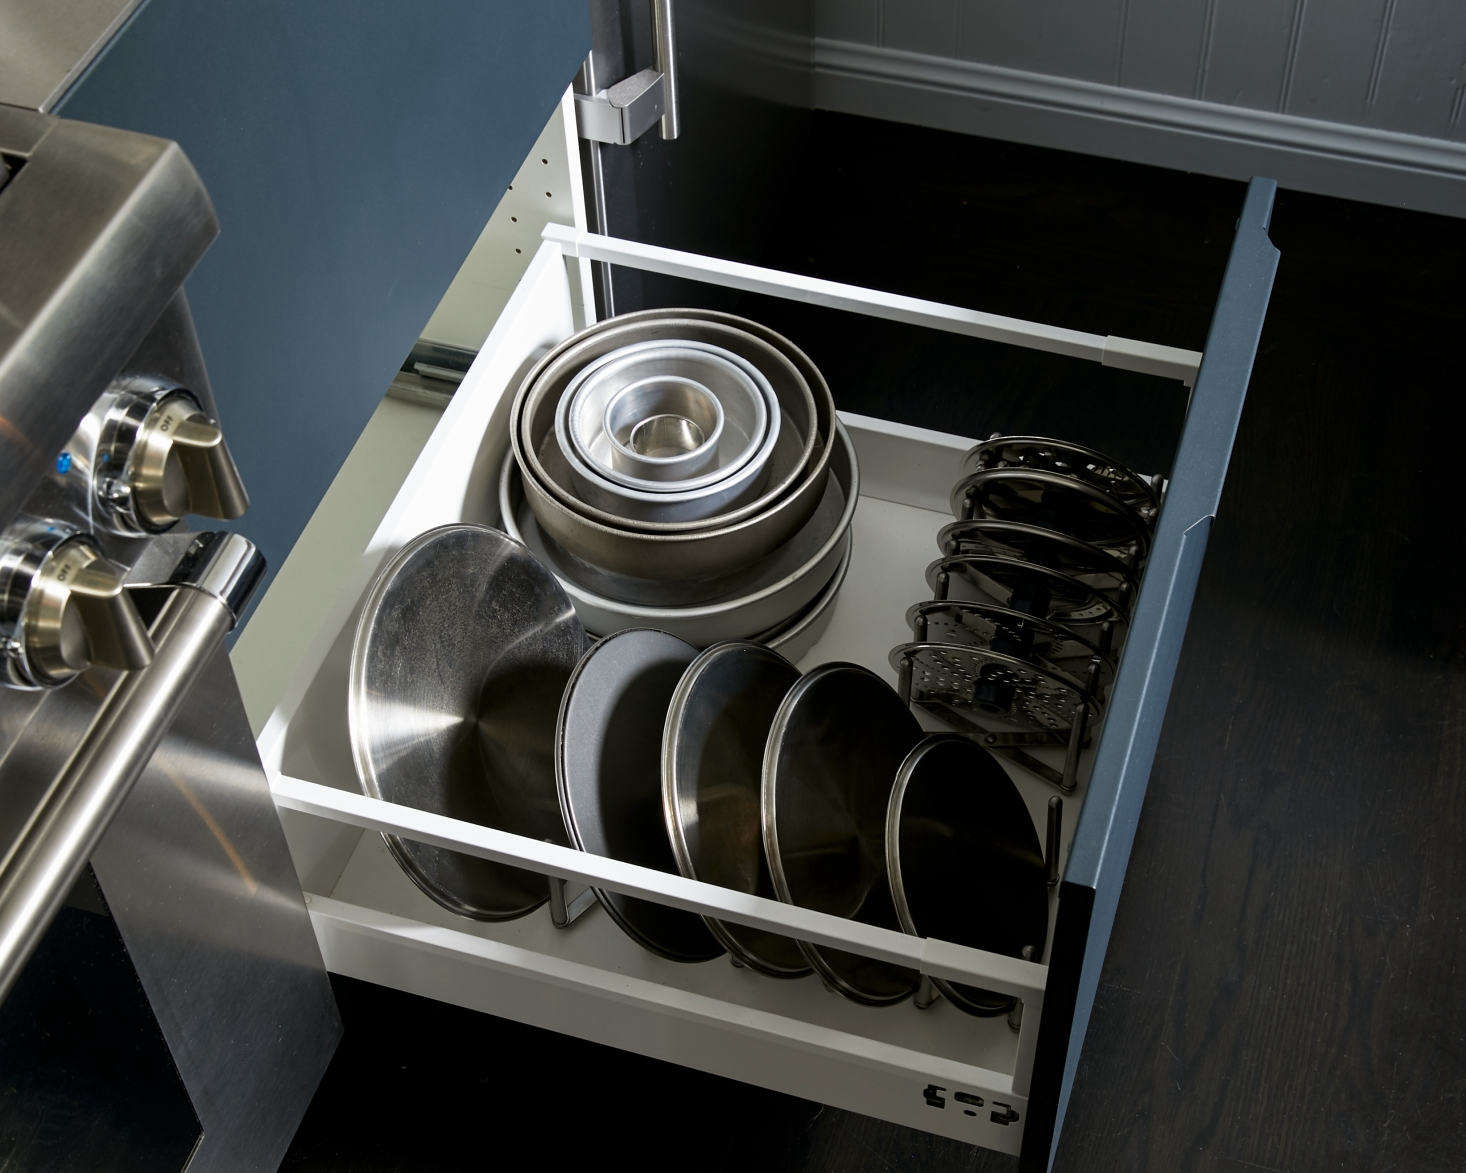 Amy keeps her pot lids neatly organized in a deep drawer to the right of the stove.